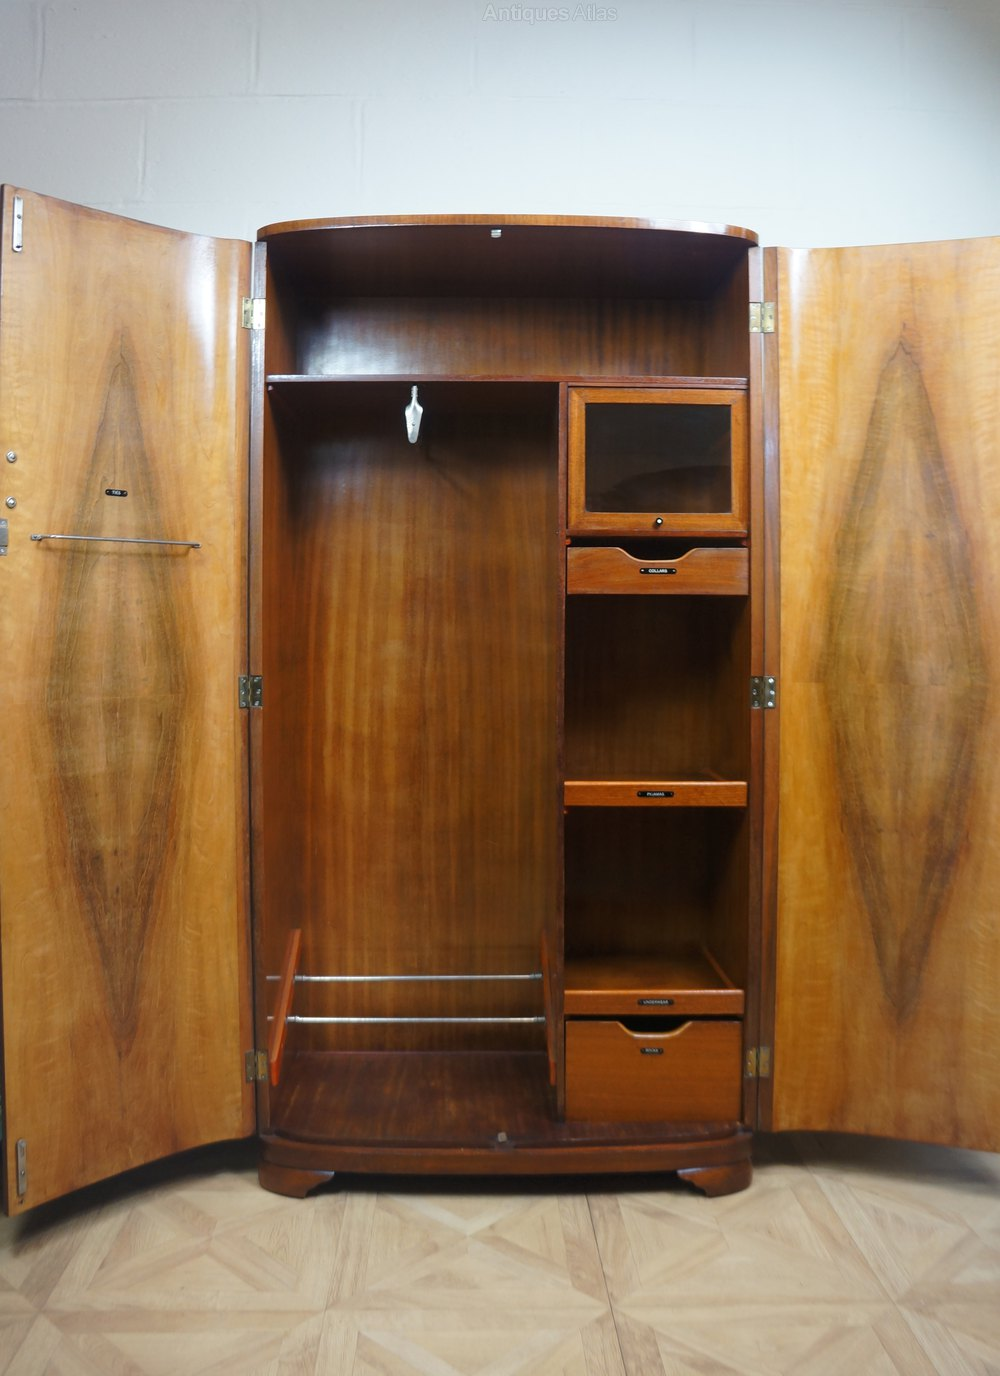 Gentlemans C1930s Art Deco Odeon Wardrobe - Antiques Atlas